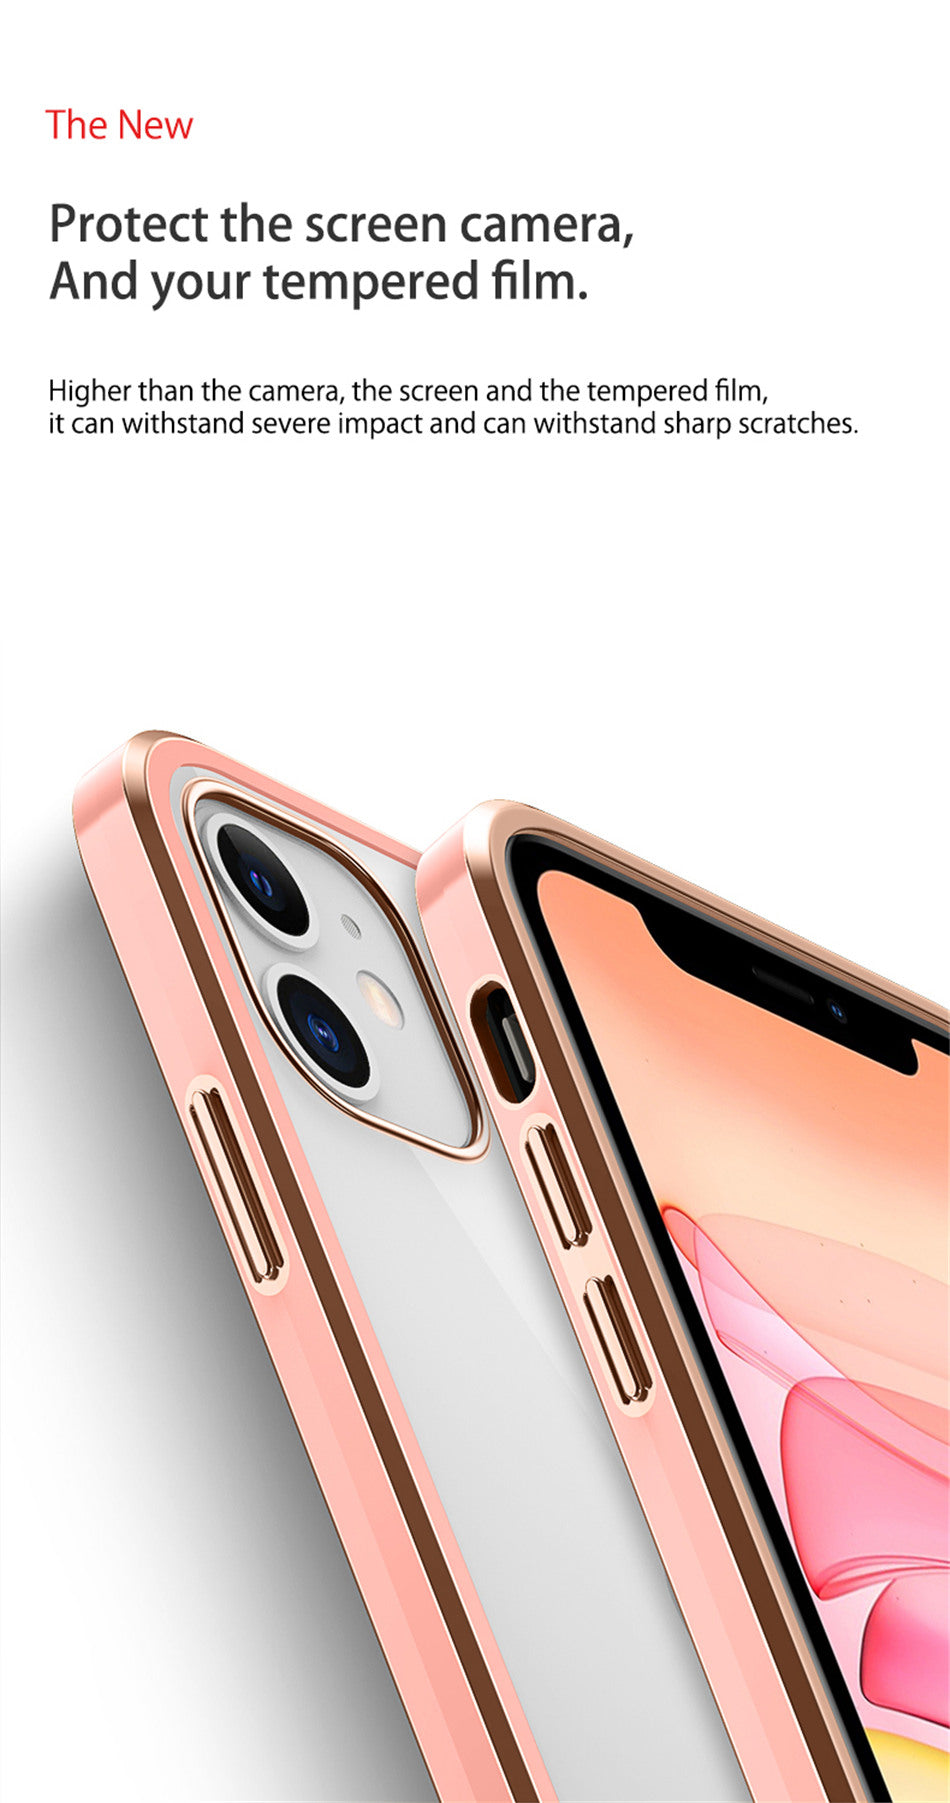 New Straight Edge Narrow Border Case For iPhone 11 Pro XS Max XR X 7 8 Plus SE 2020 The Feel of iPhone 12 Transparent Square Frame Back Cover Case For iPhone